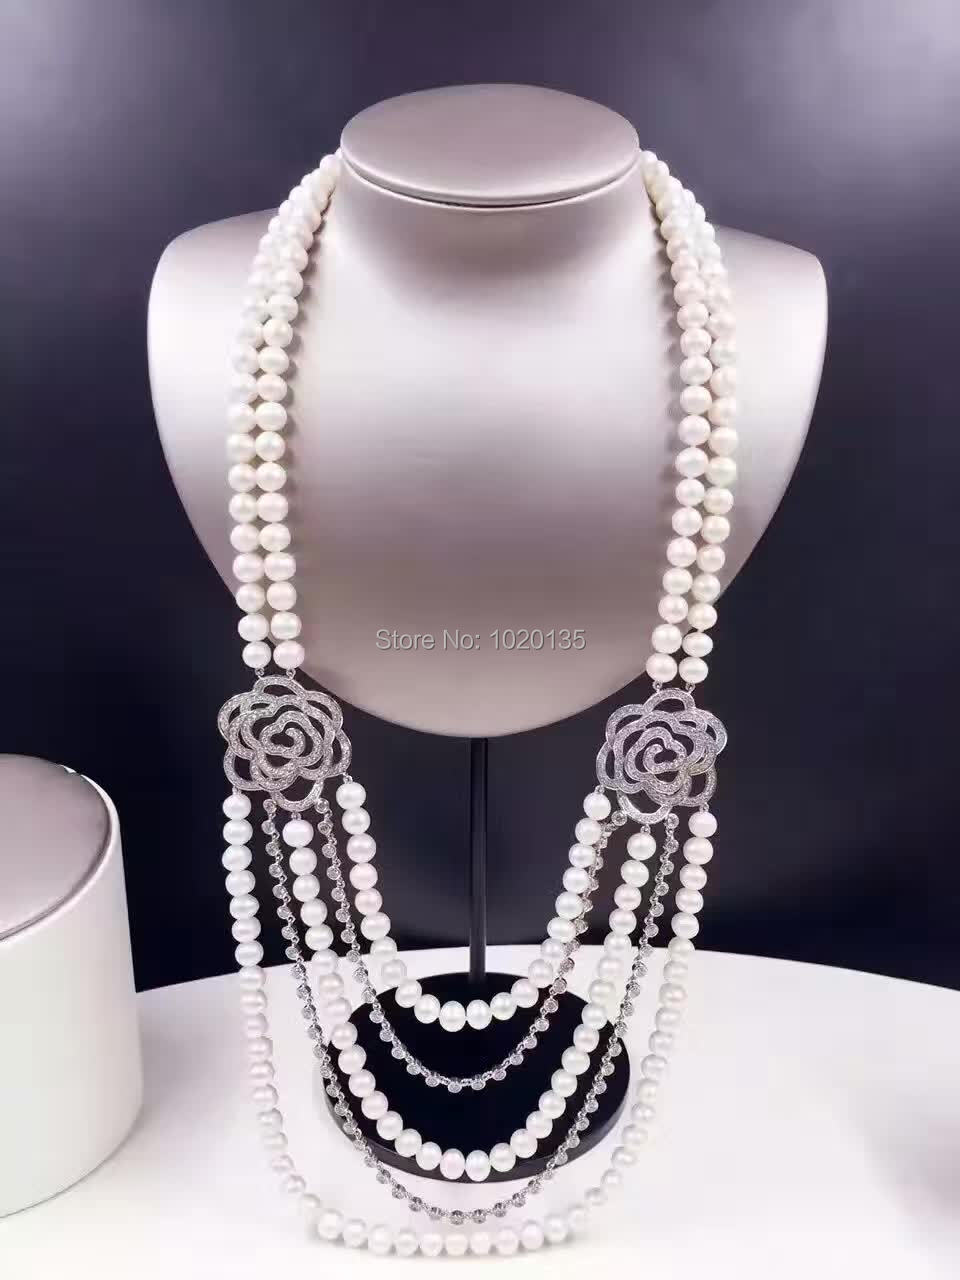 3rows 8-9mm near round white freshwater pearl necklace amazing gift hot FPPJ3rows 8-9mm near round white freshwater pearl necklace amazing gift hot FPPJ